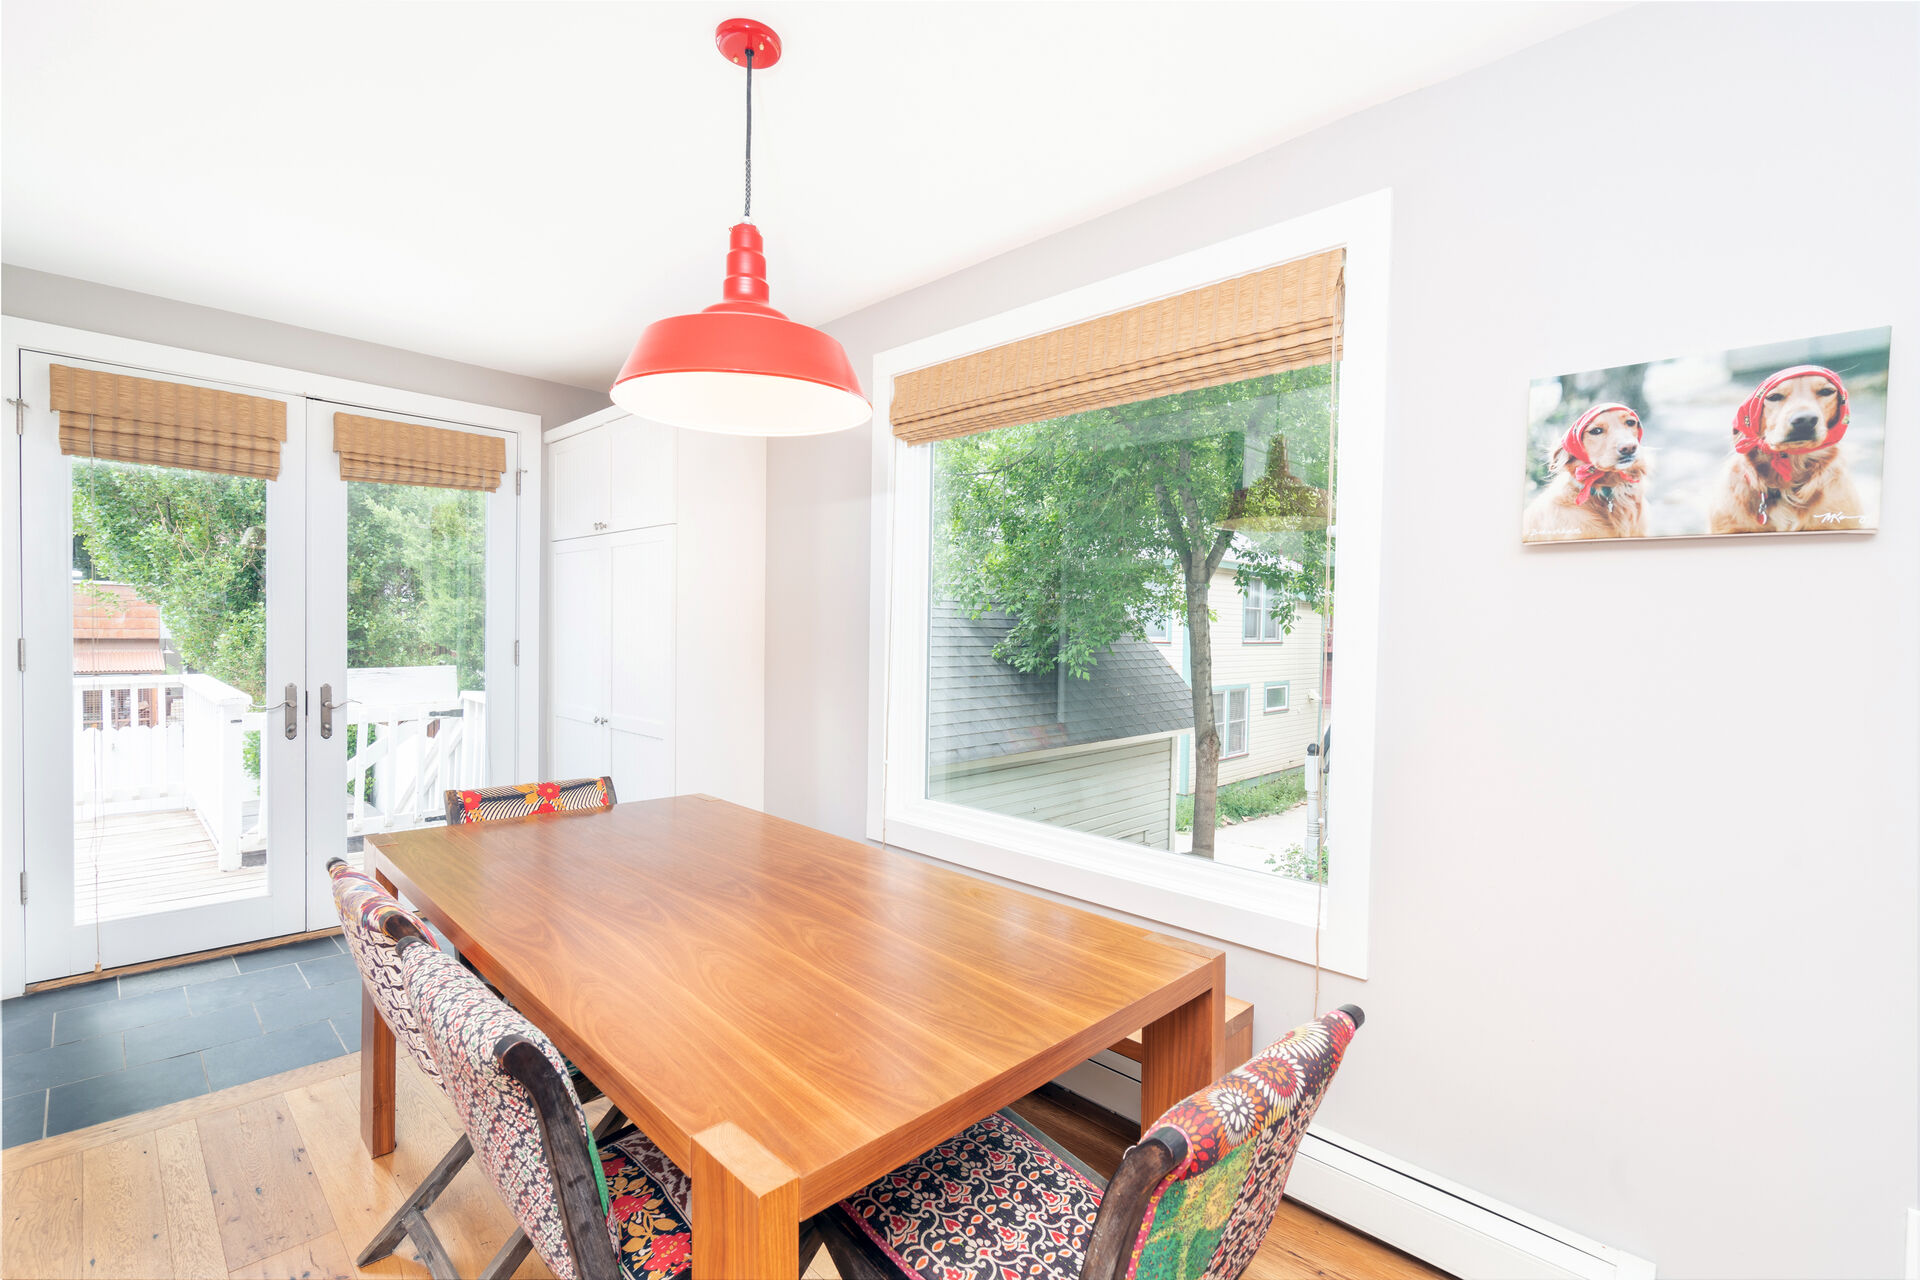 Dining room table with seating for 4.